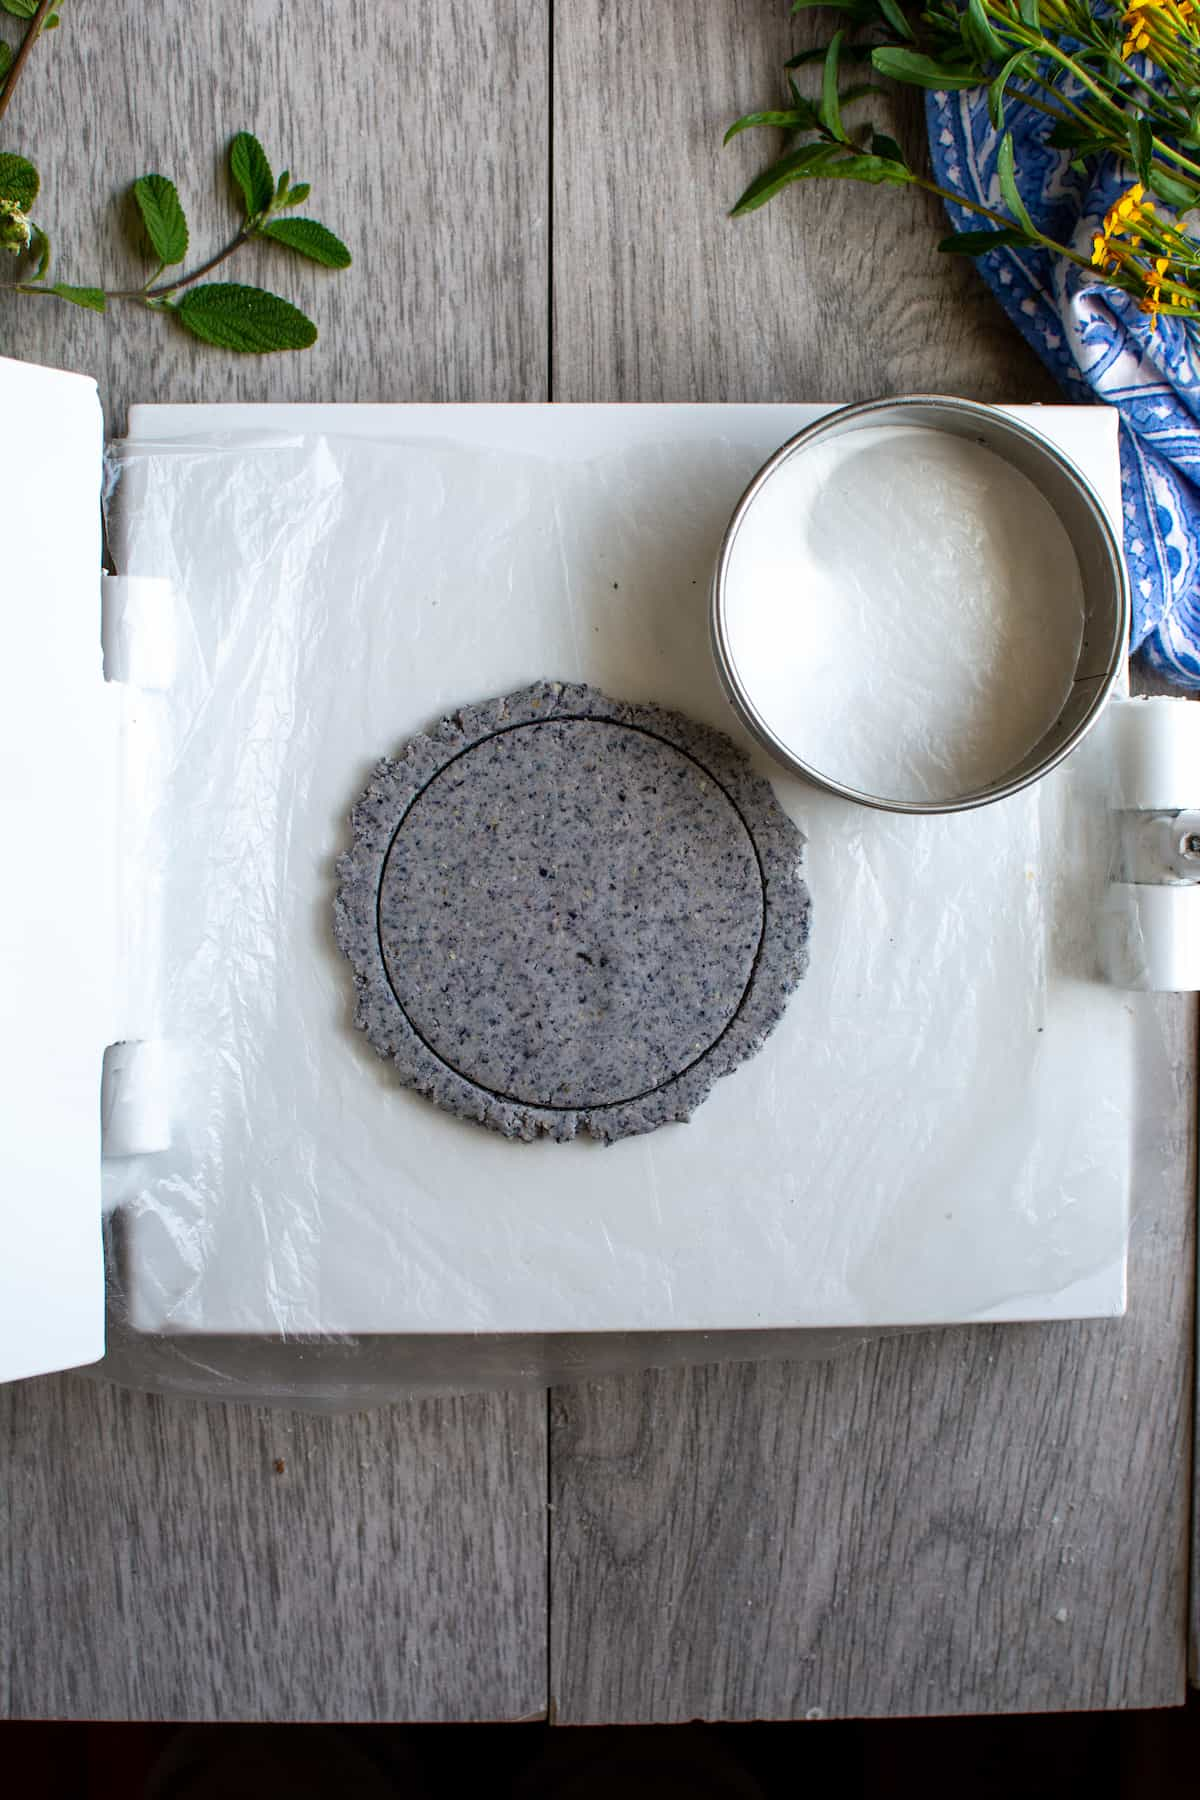 A flattened round of blue corn masa dough cut with a round metal biscuit cutter which is sitting next to it on a white tortilla press.